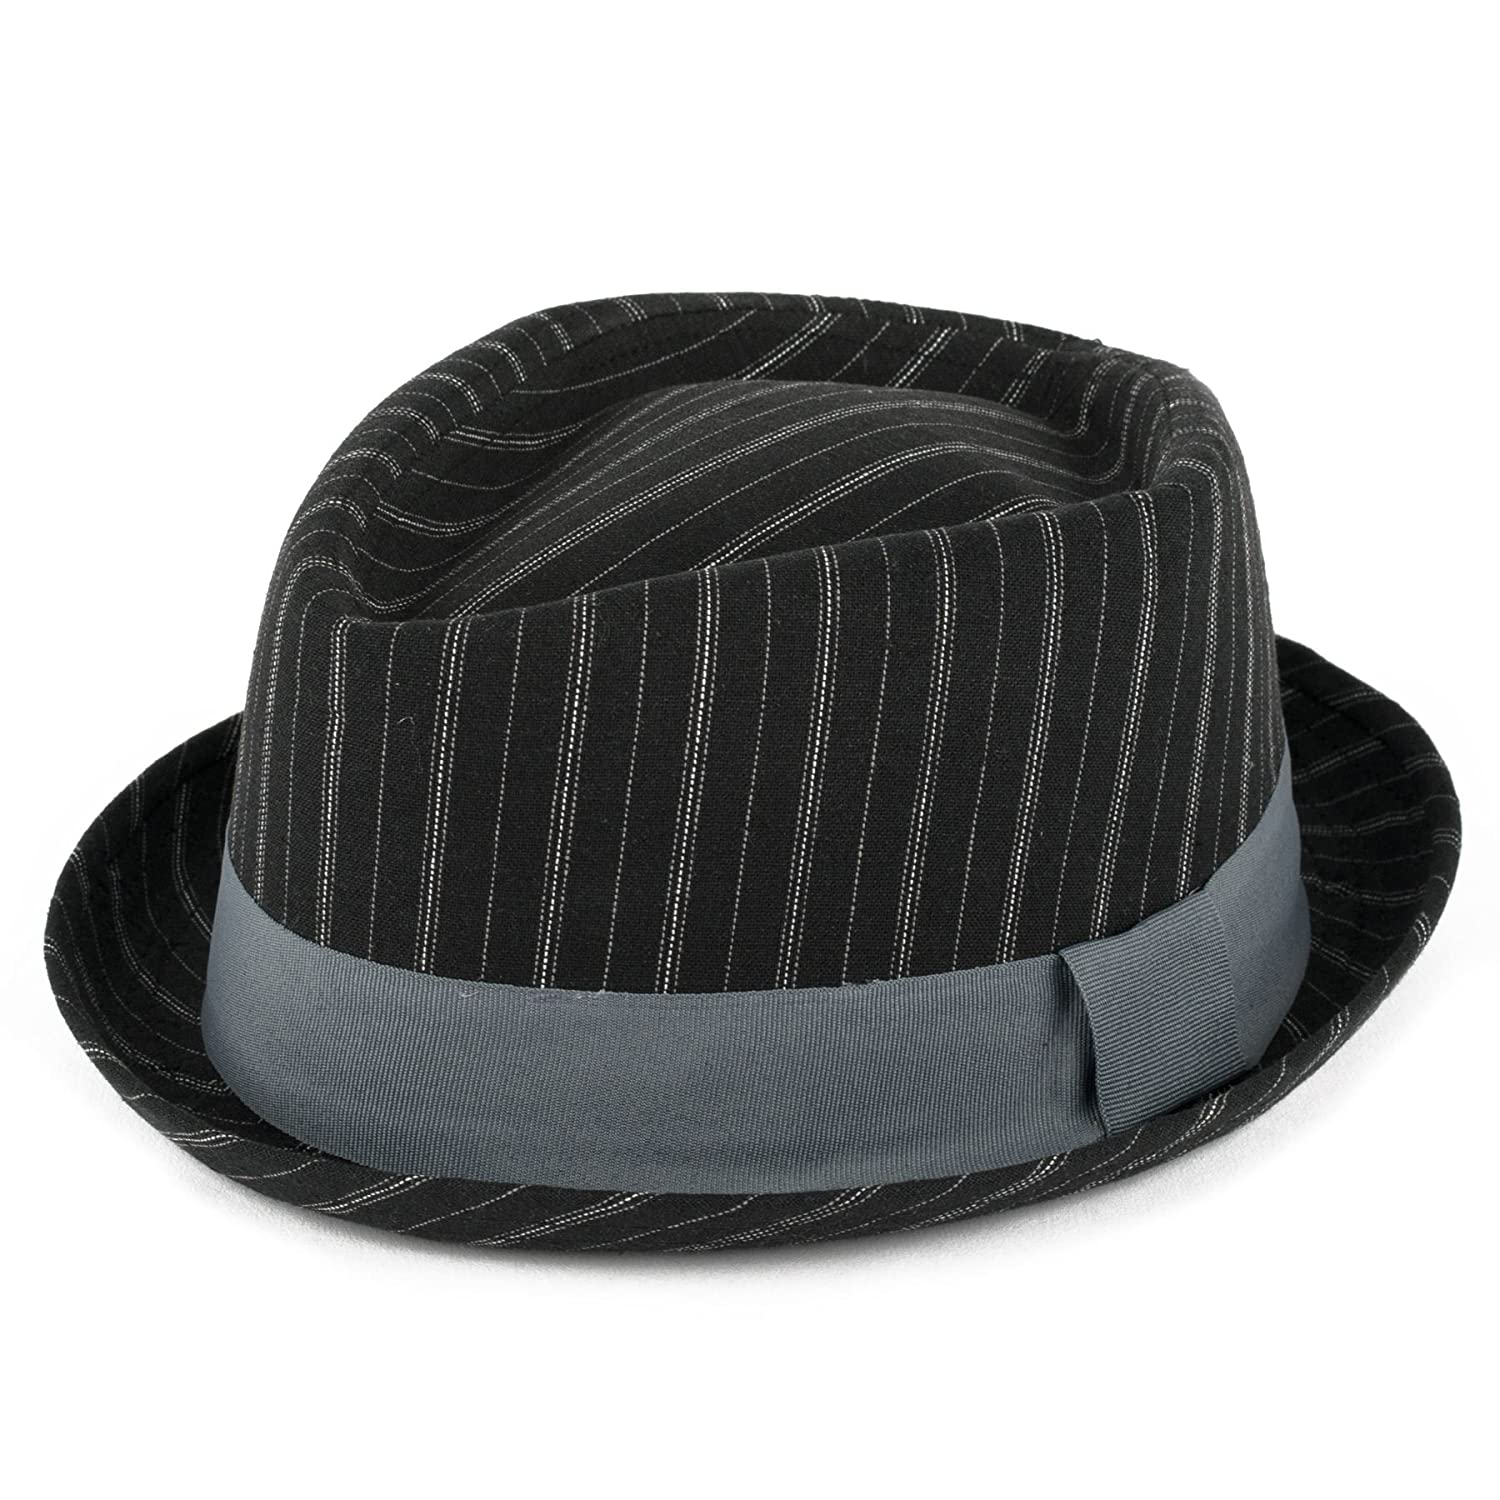 Hat To Socks Diamond Shaped Pinstriped Summer Pork Pie Hat